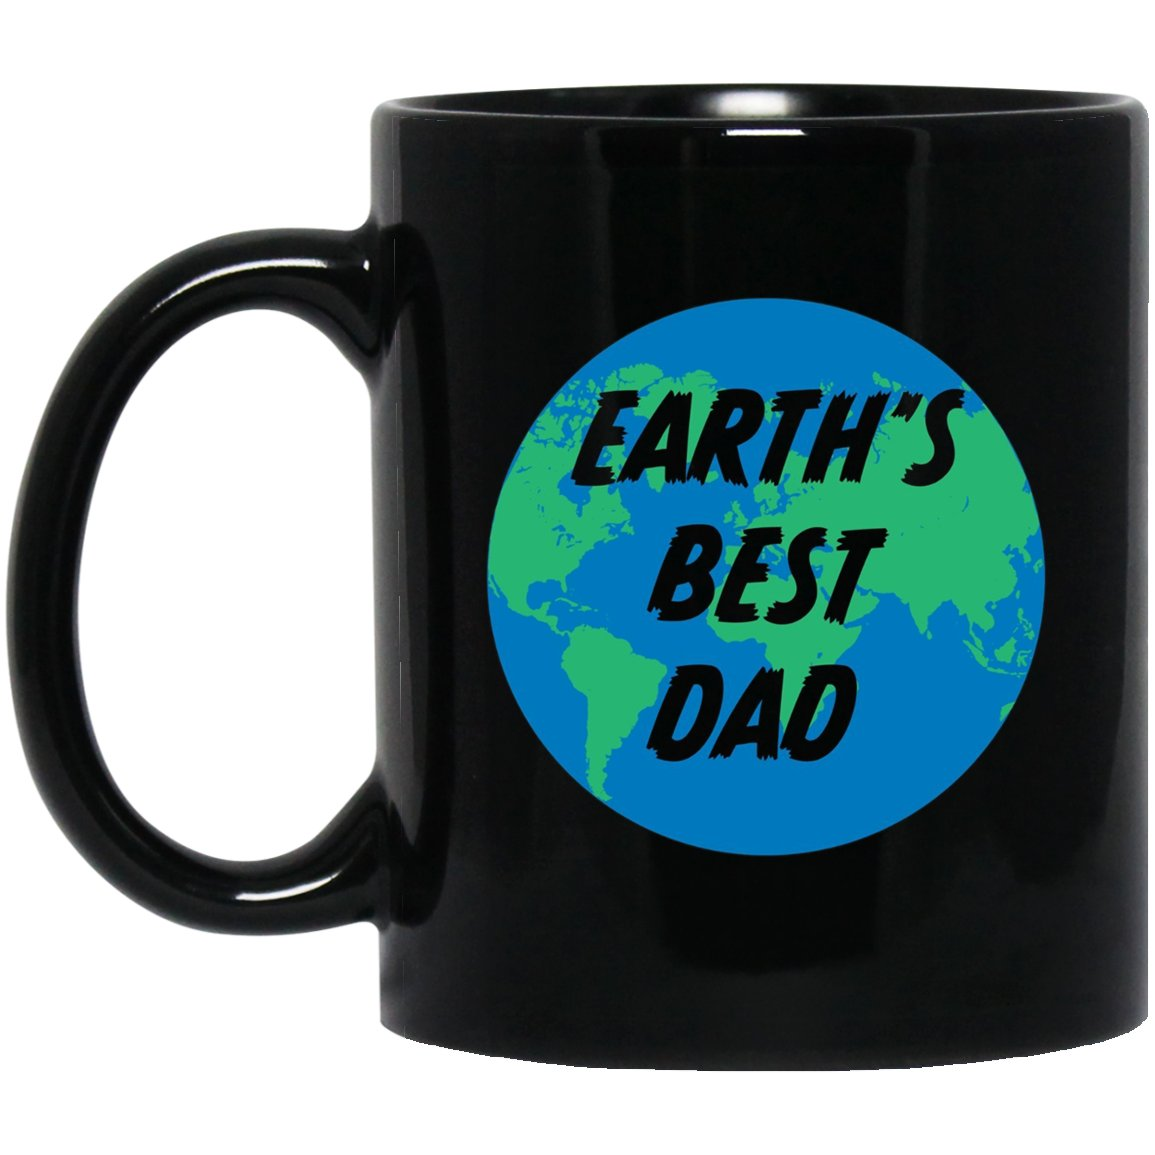 Mens Earth_s Best Dad - Men_s Black  Mug Black Ceramic 11oz Coffee Tea Cup